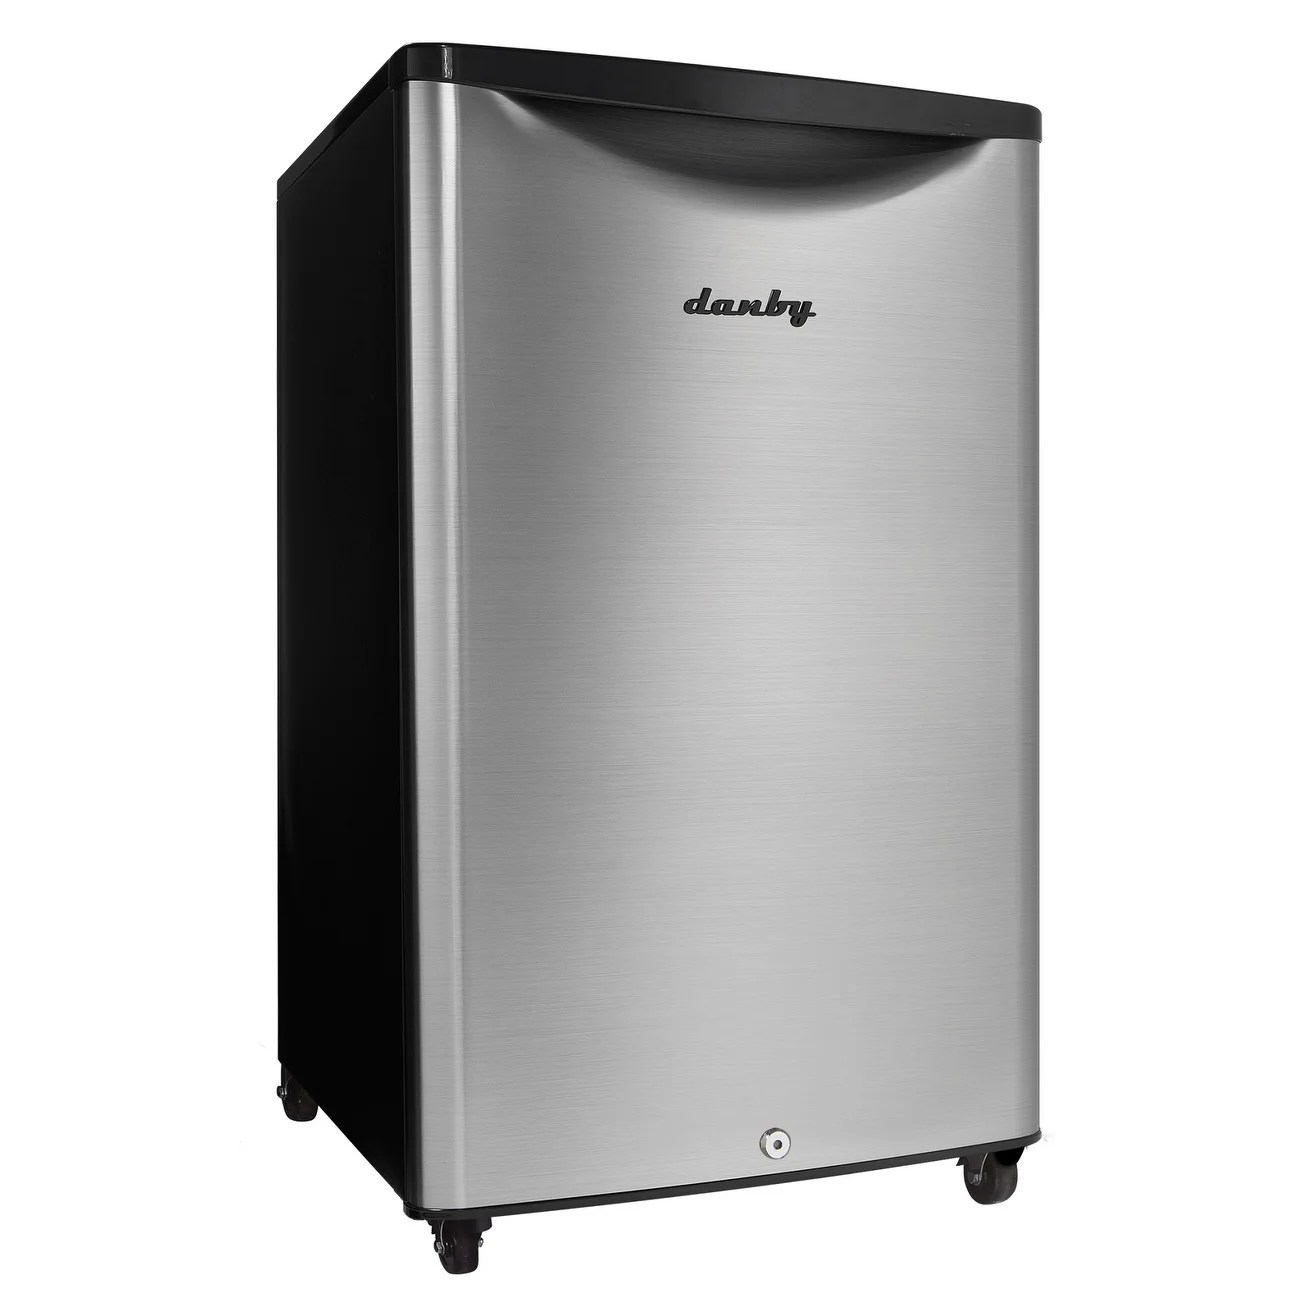 Small Stand Up Freezer Buy Refrigerators Online At Overstock Our Best Large Appliances